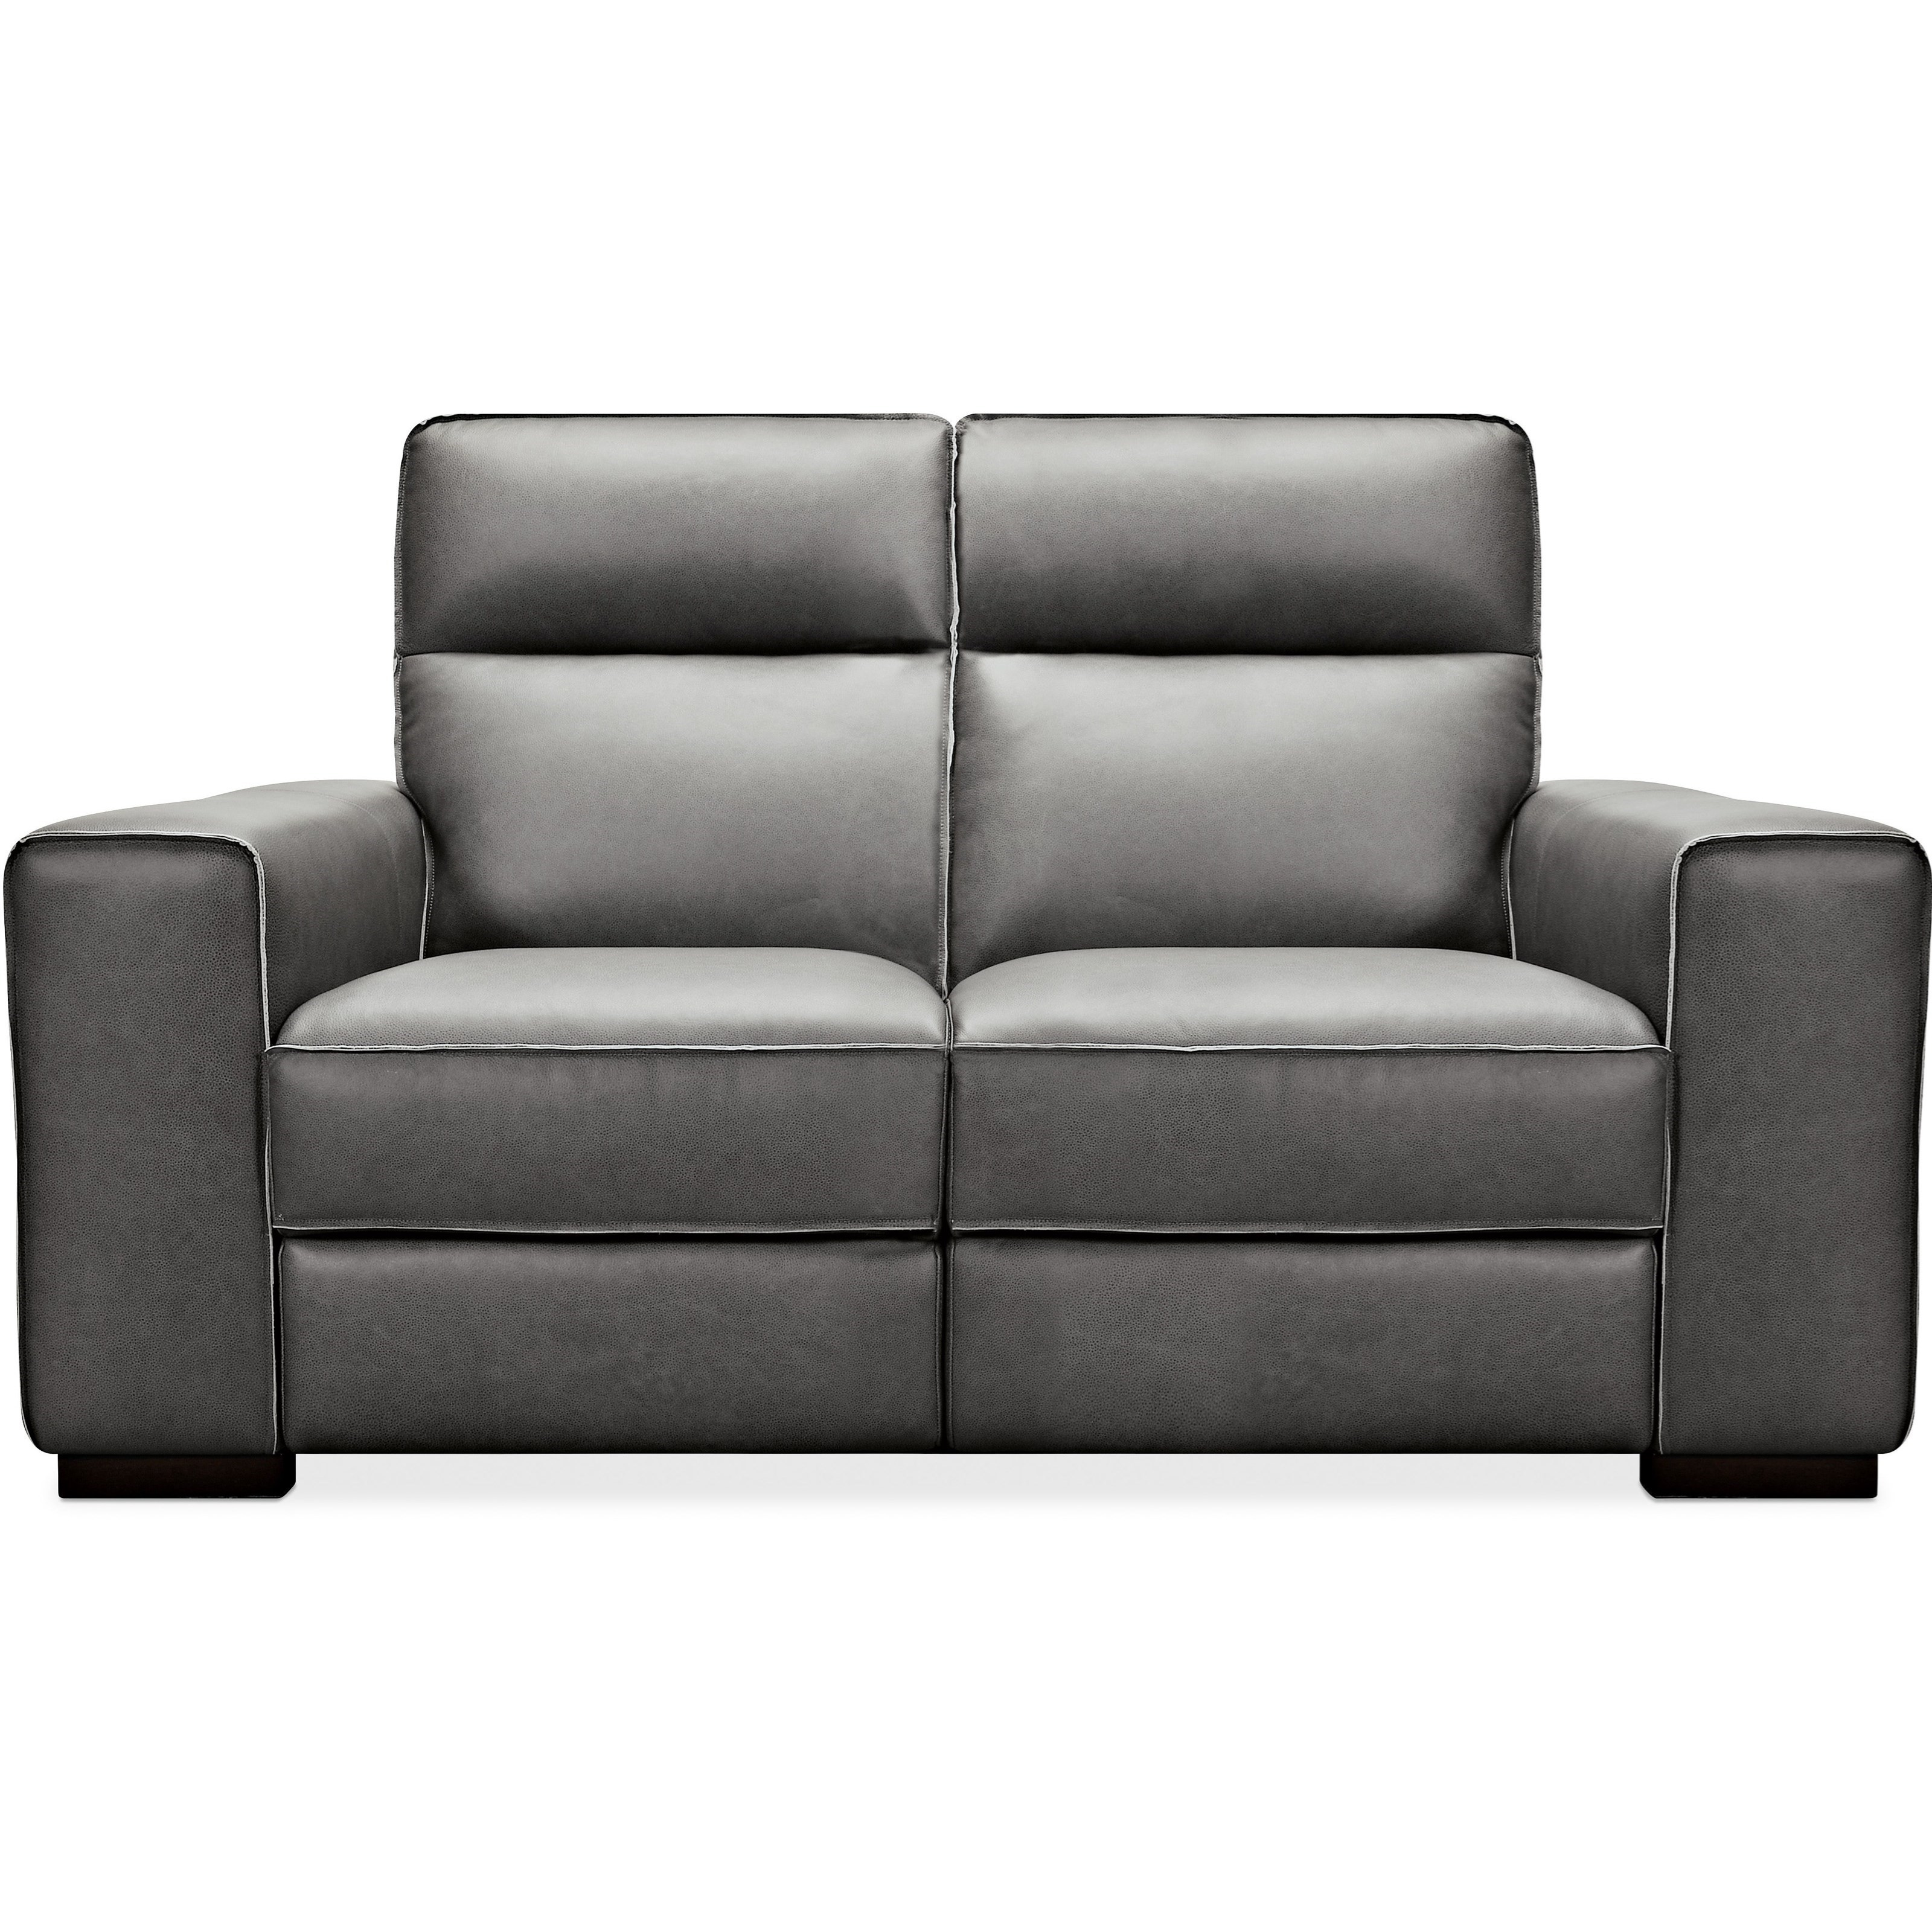 Braeburn Leather Power Reclining Loveseat by Hooker Furniture at Miller Waldrop Furniture and Decor